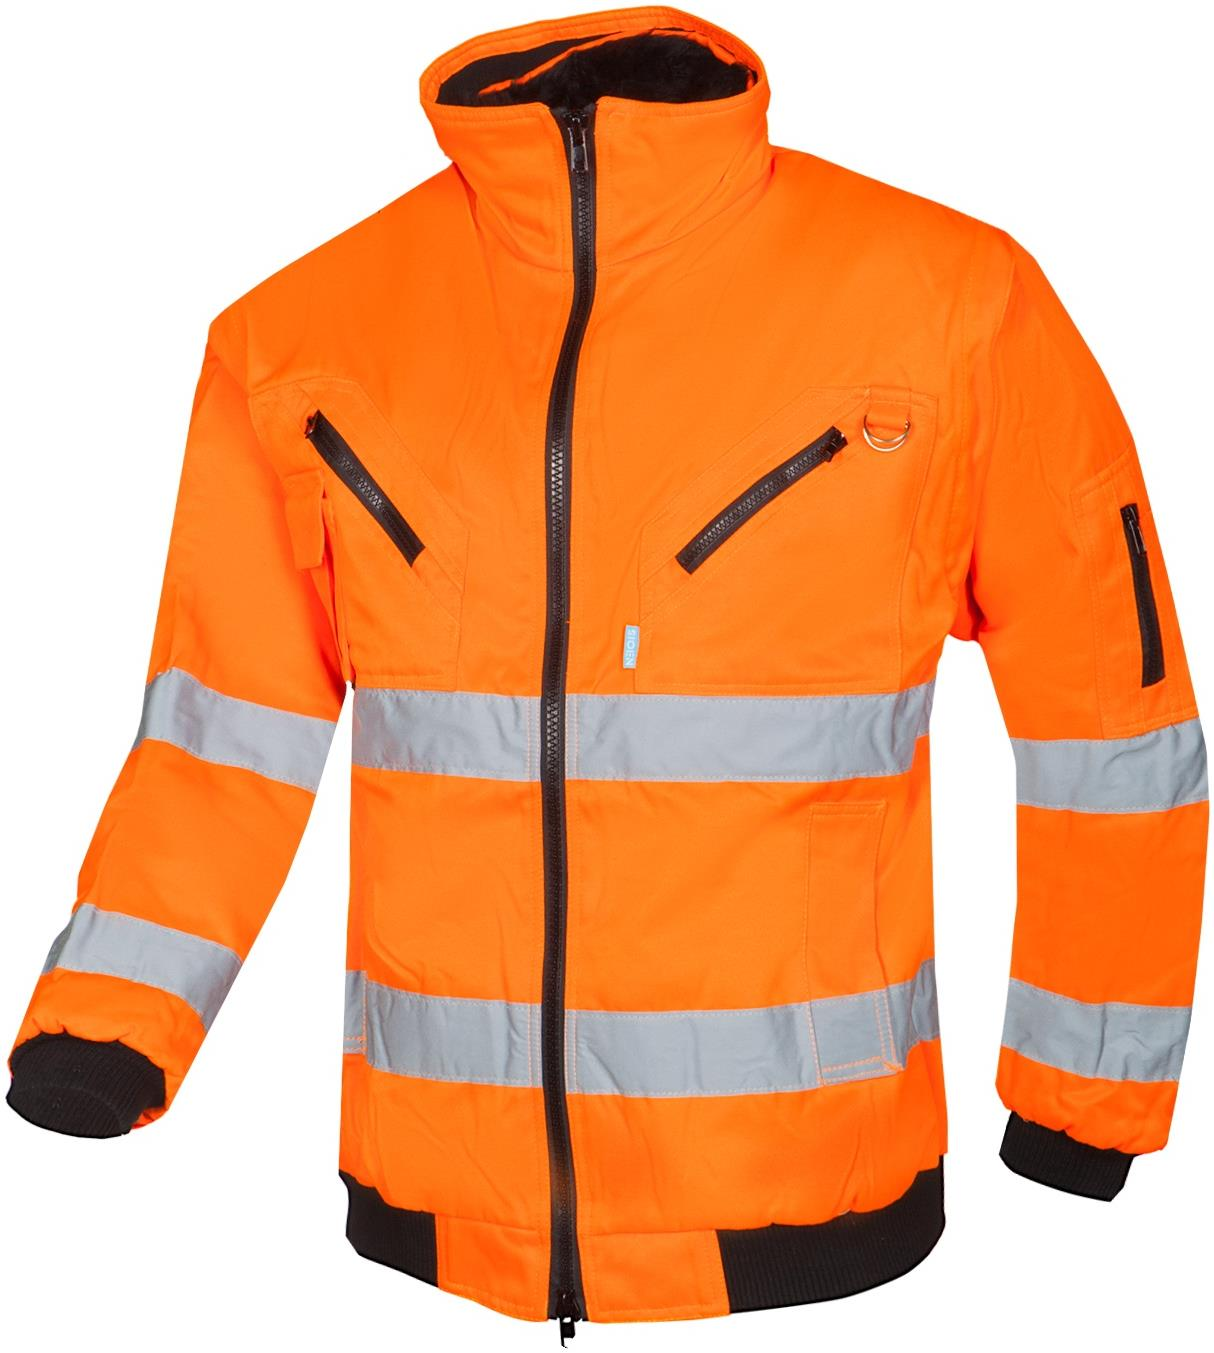 Sioen Sparrow High Vis Bomber Jacket with Detachable Sleeves